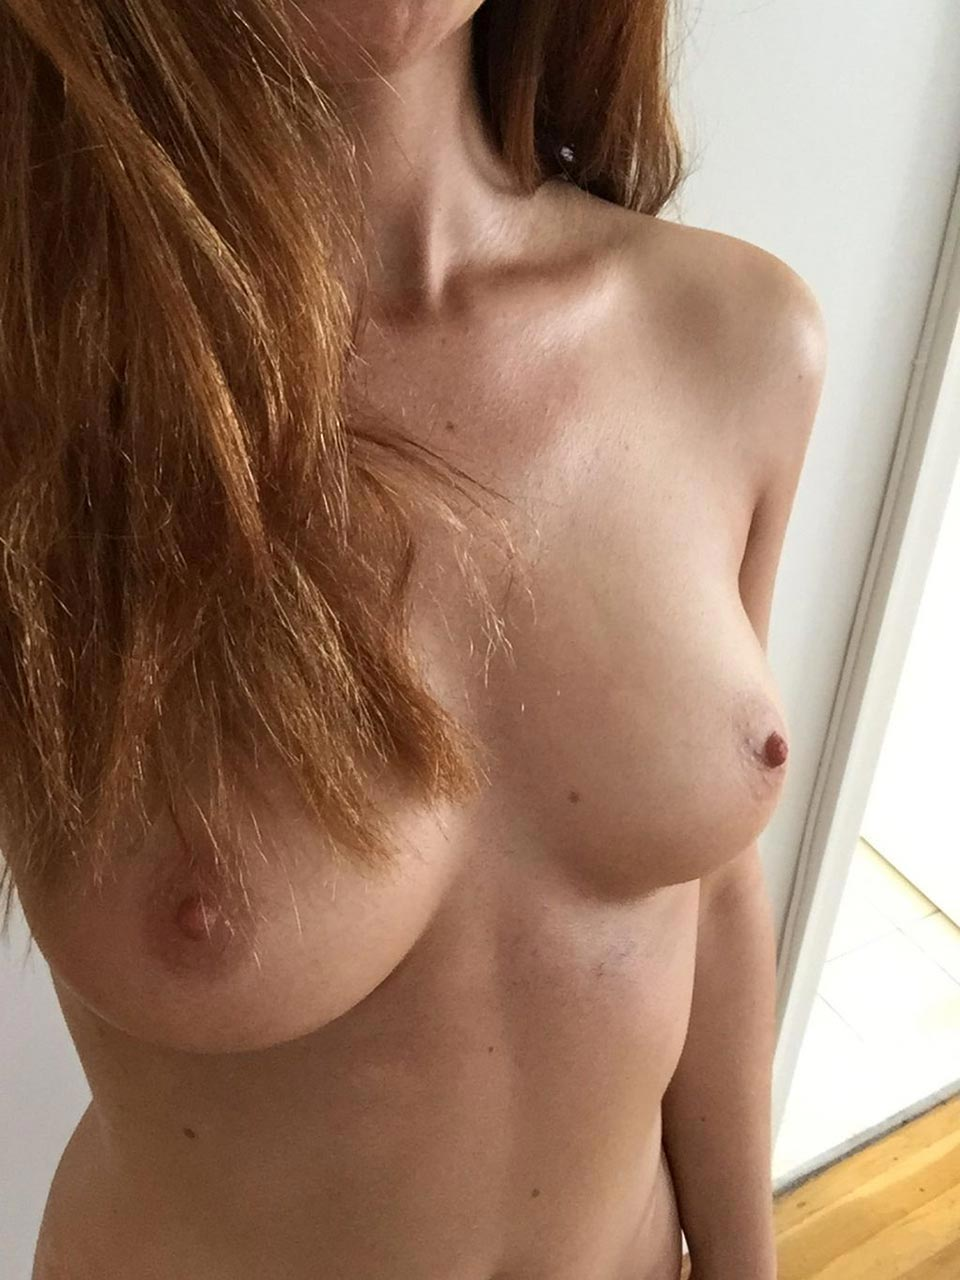 Bonnie Wright Naked  Leaked Uncensored Pics  - Scandalpost-6223